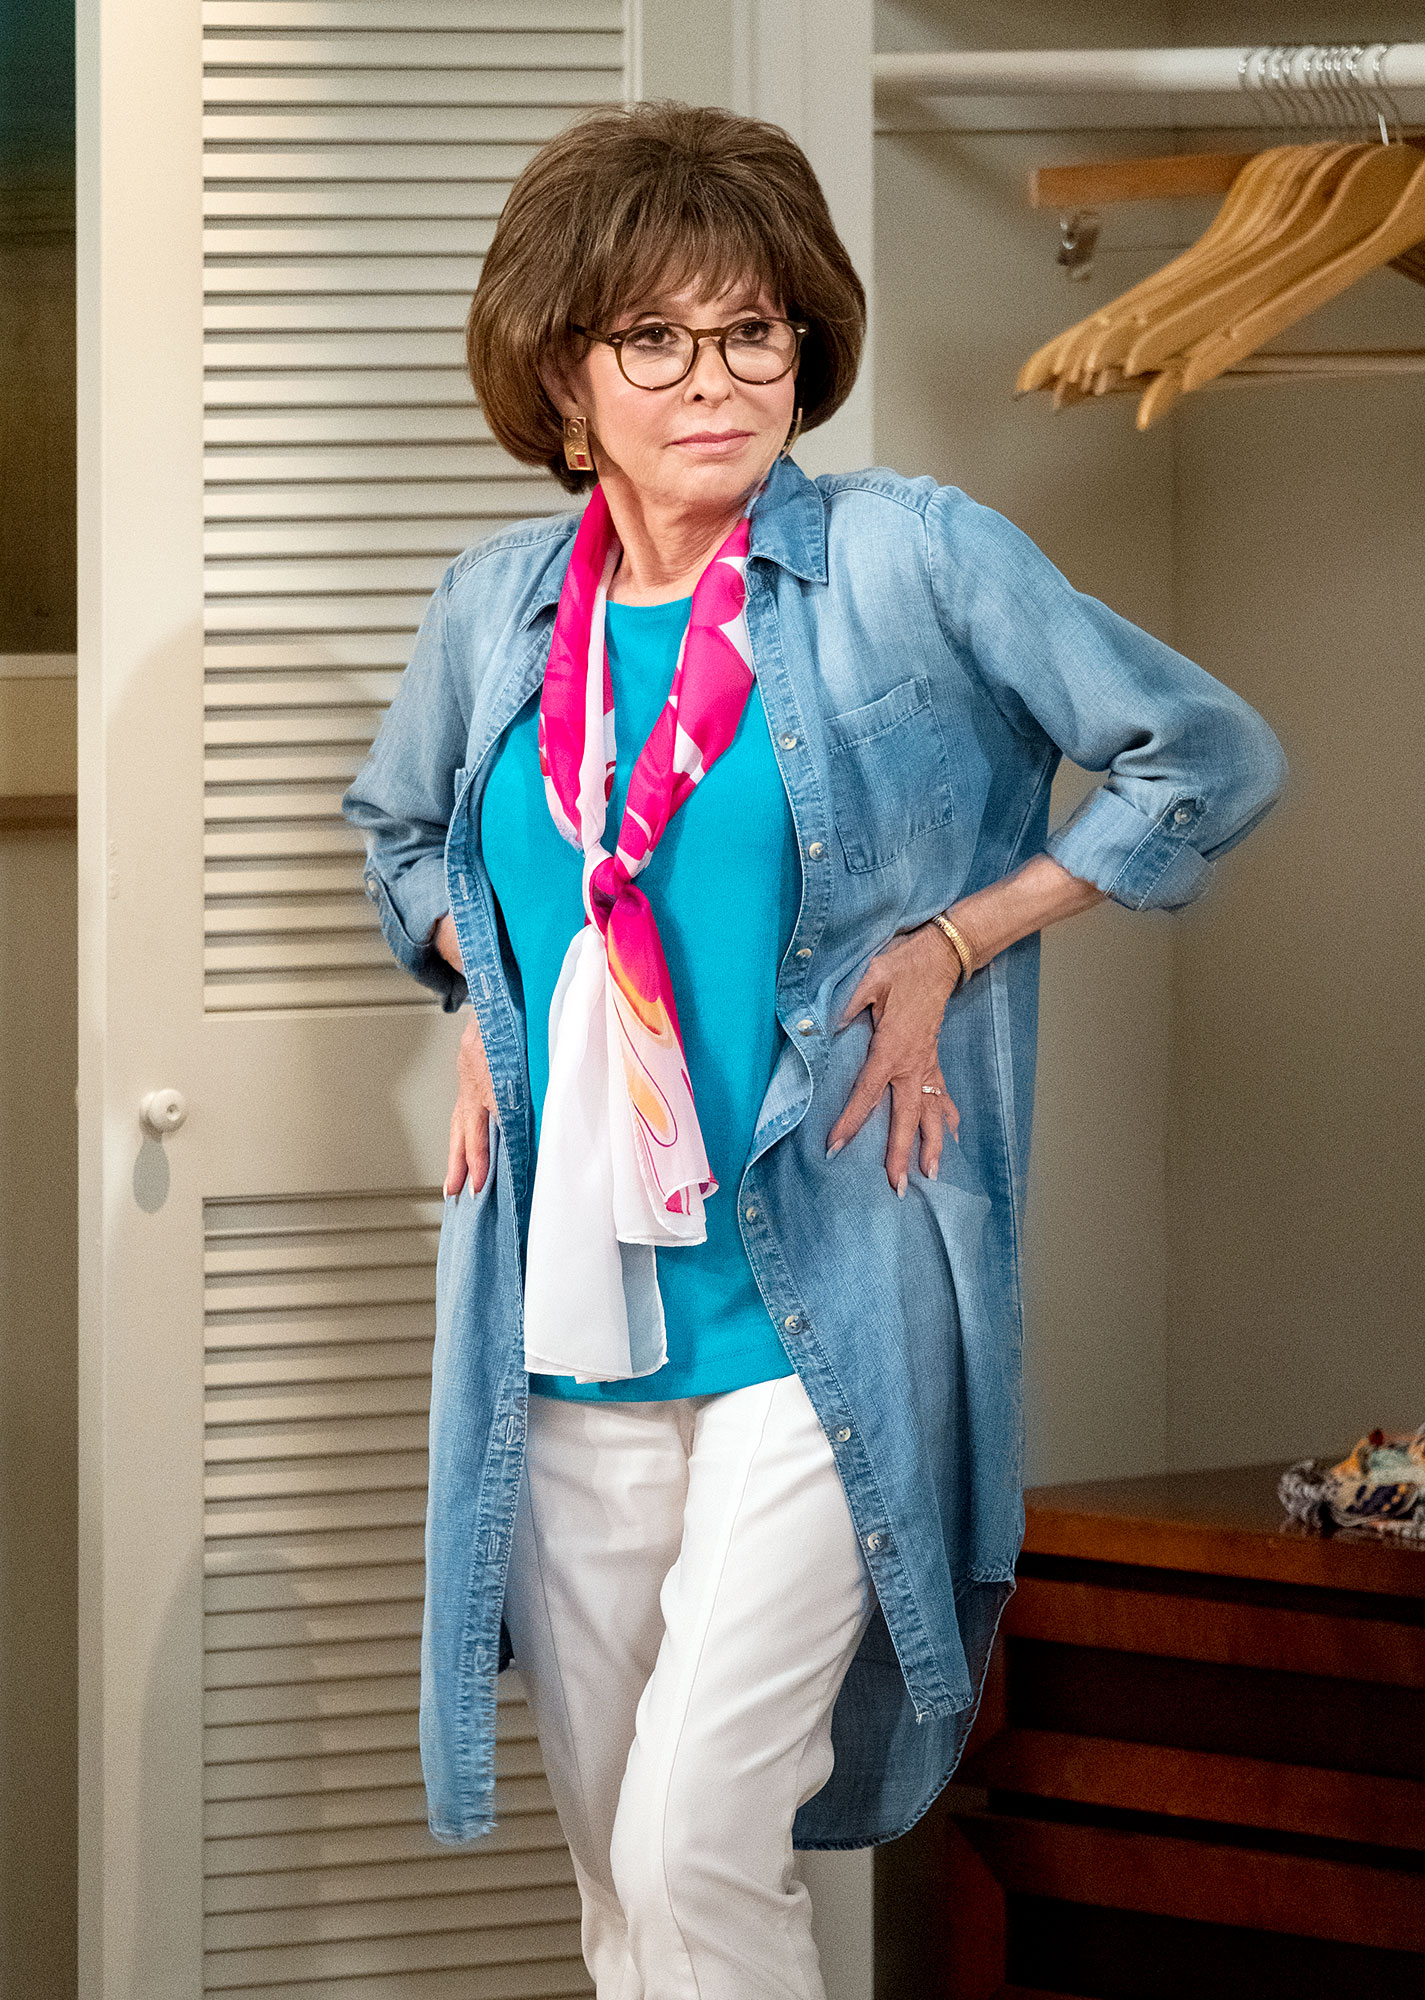 Rita Moreno in One Day At A Time 25 Things You Don't Know About Me